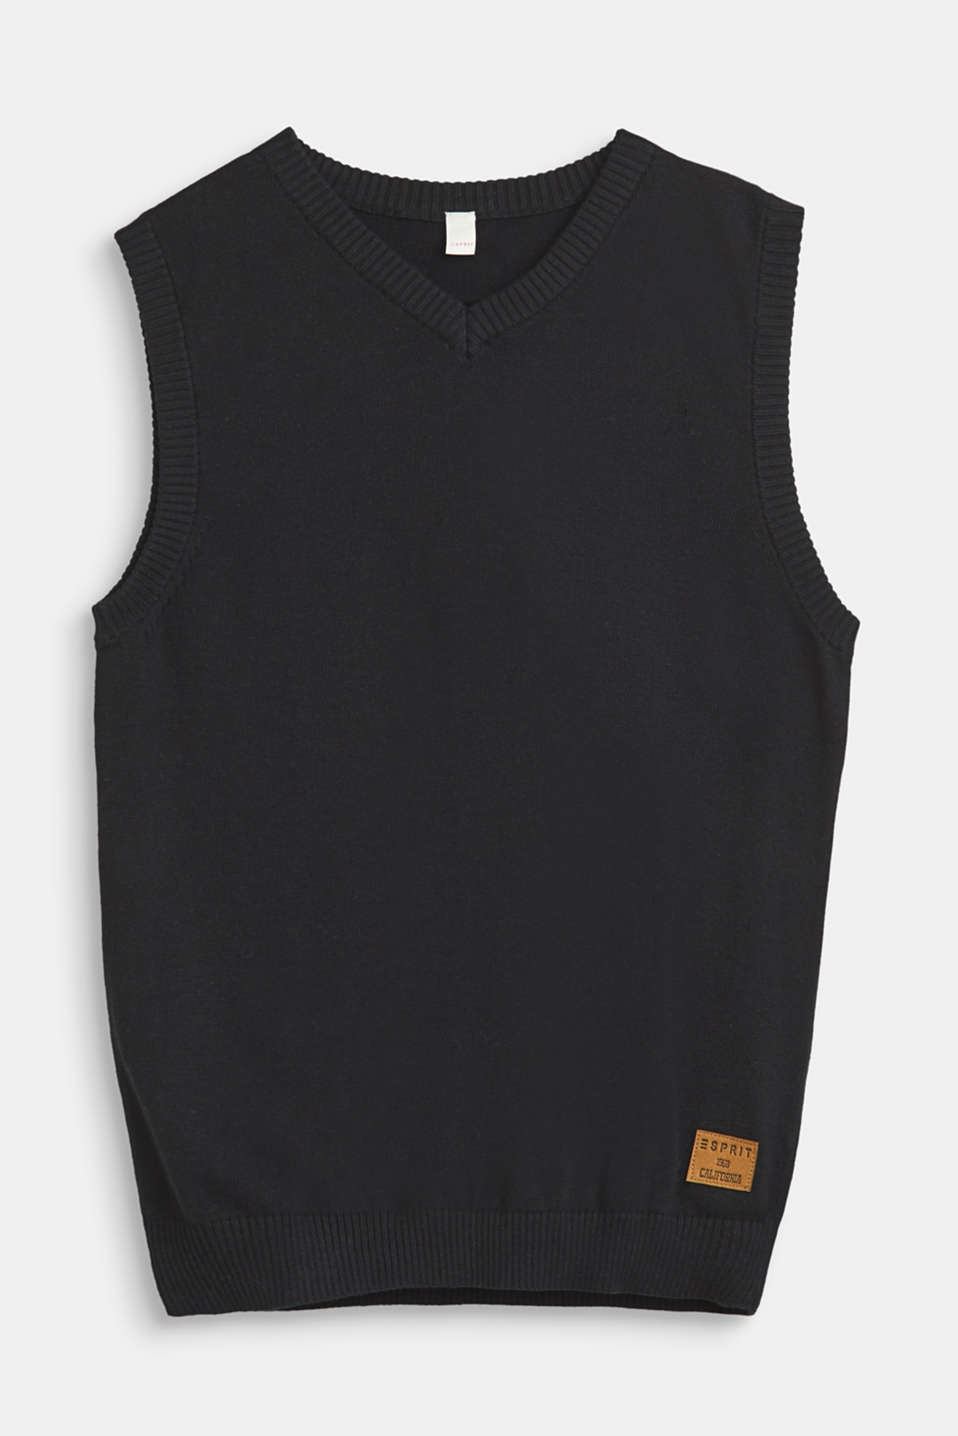 Esprit - Knitted vest in 100% cotton